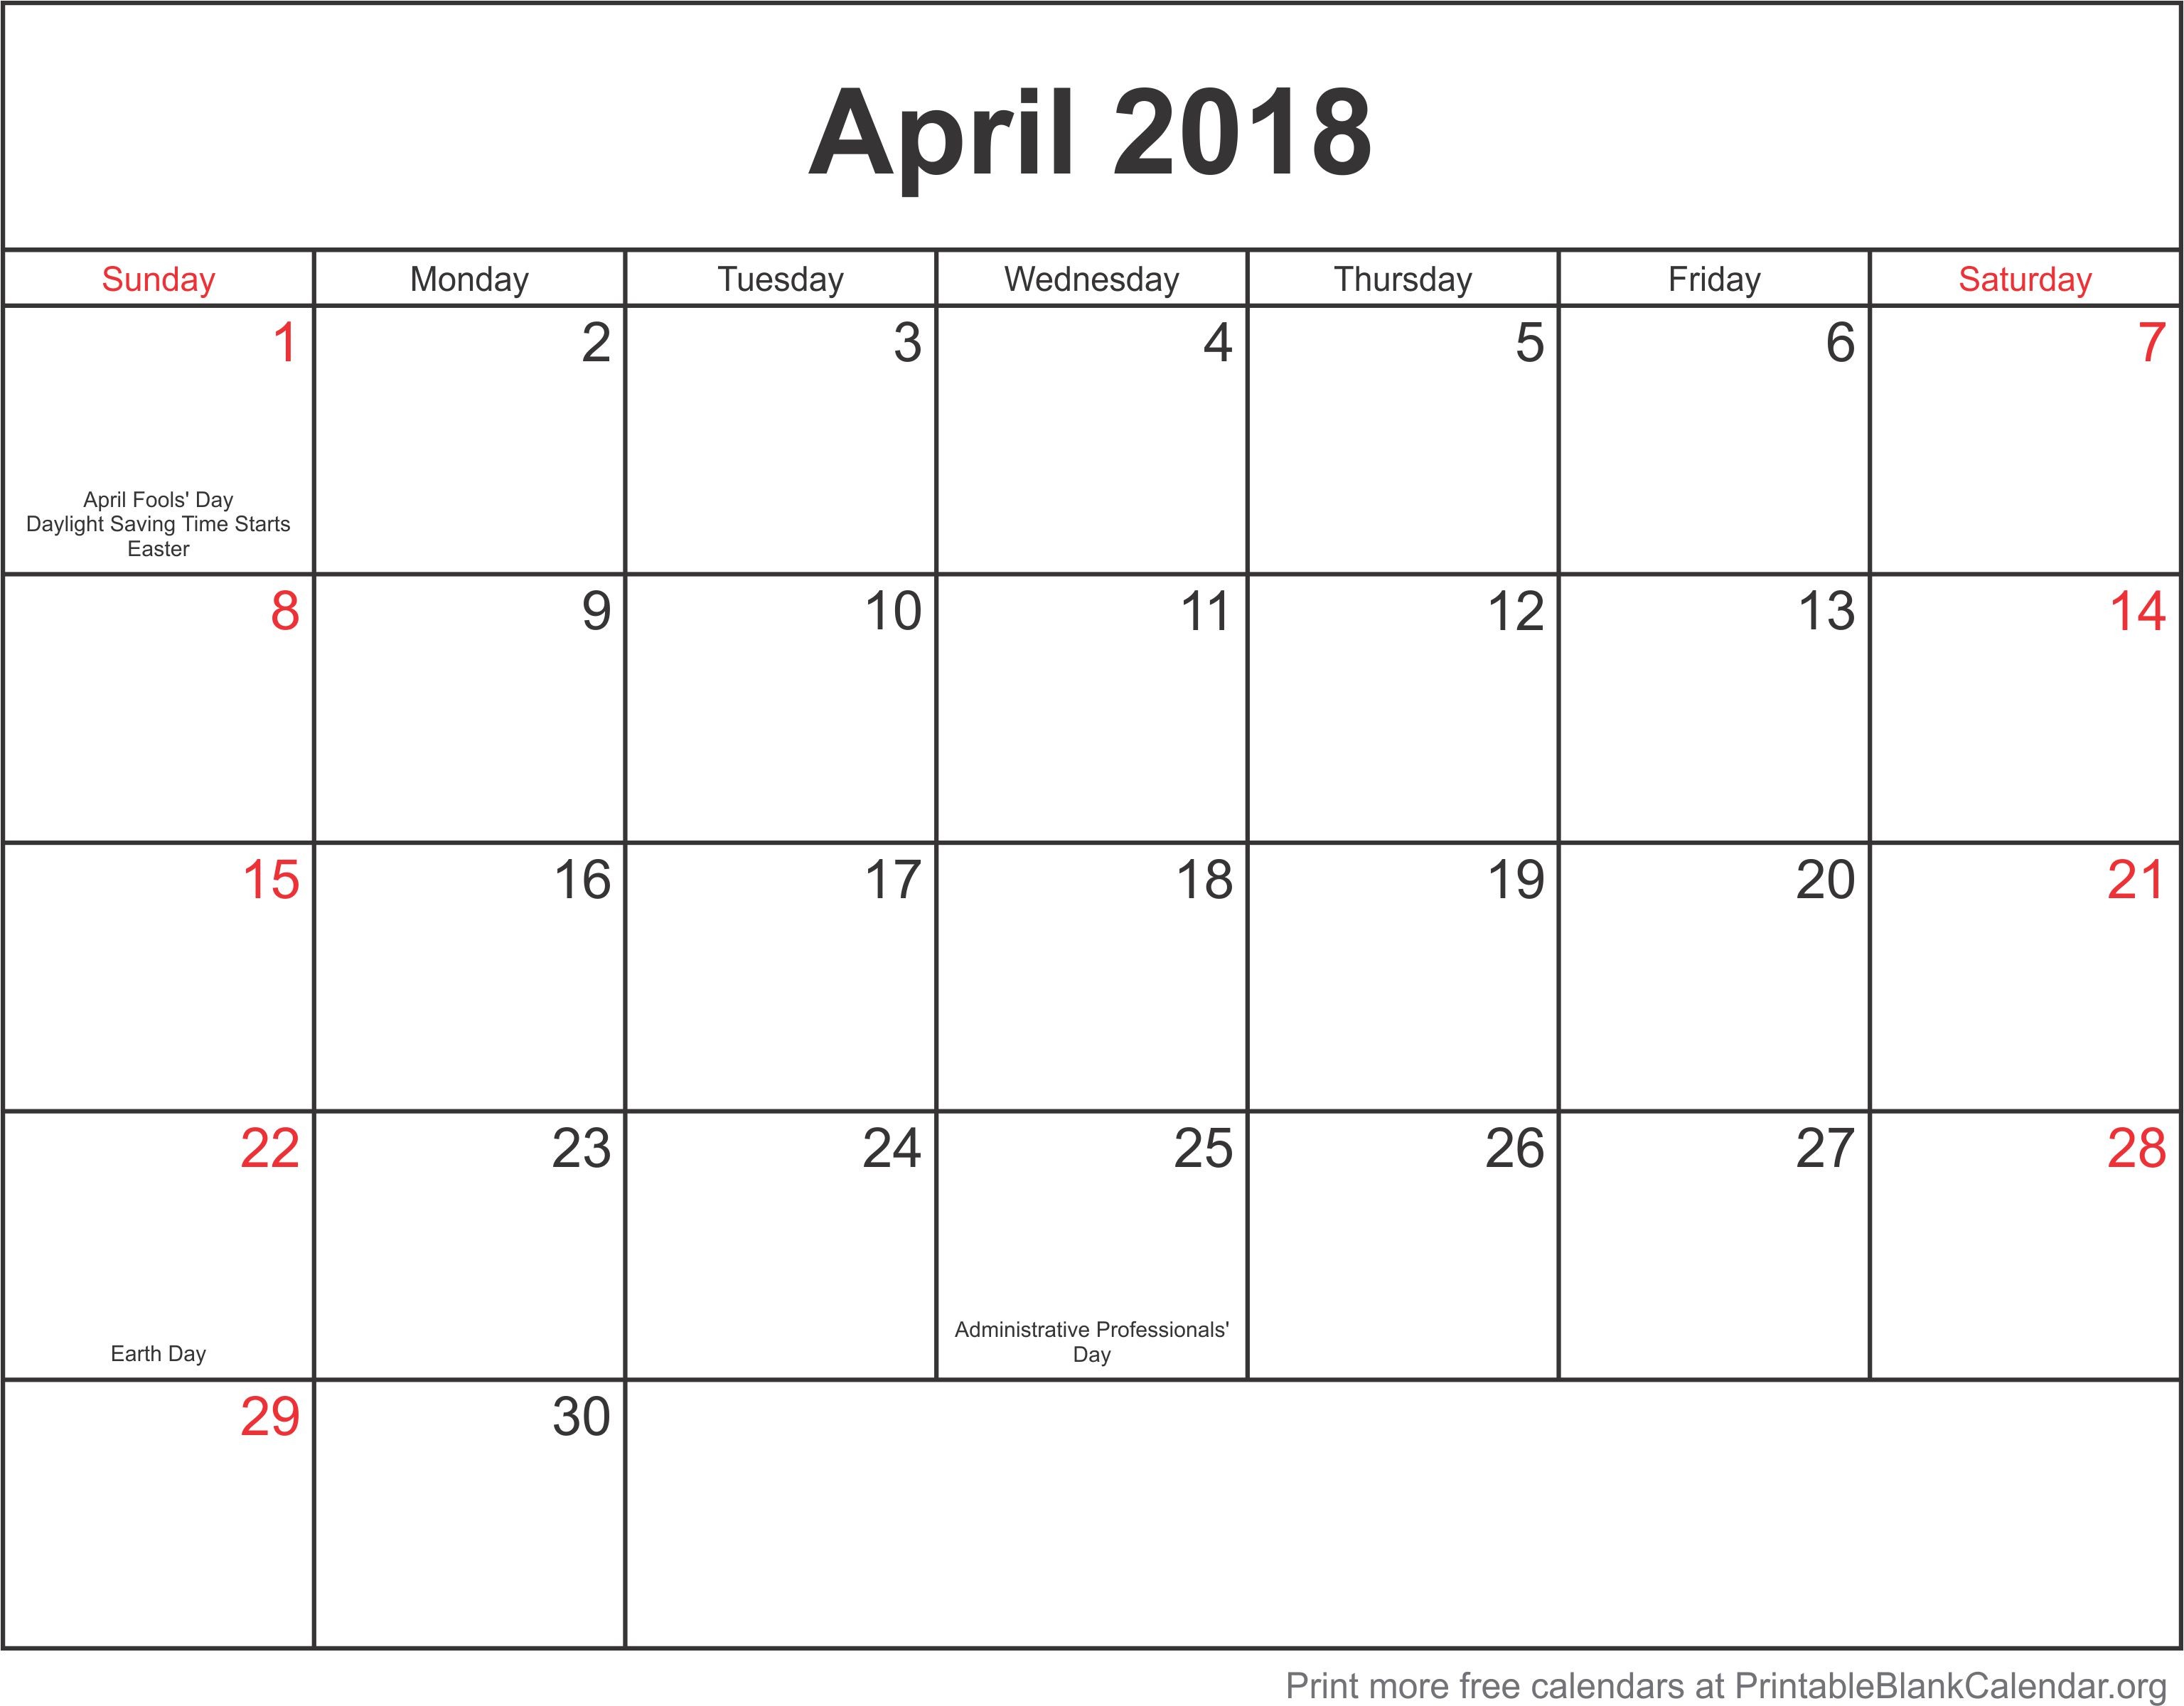 Blank Calendar Template April : Printable blank calendar free templates